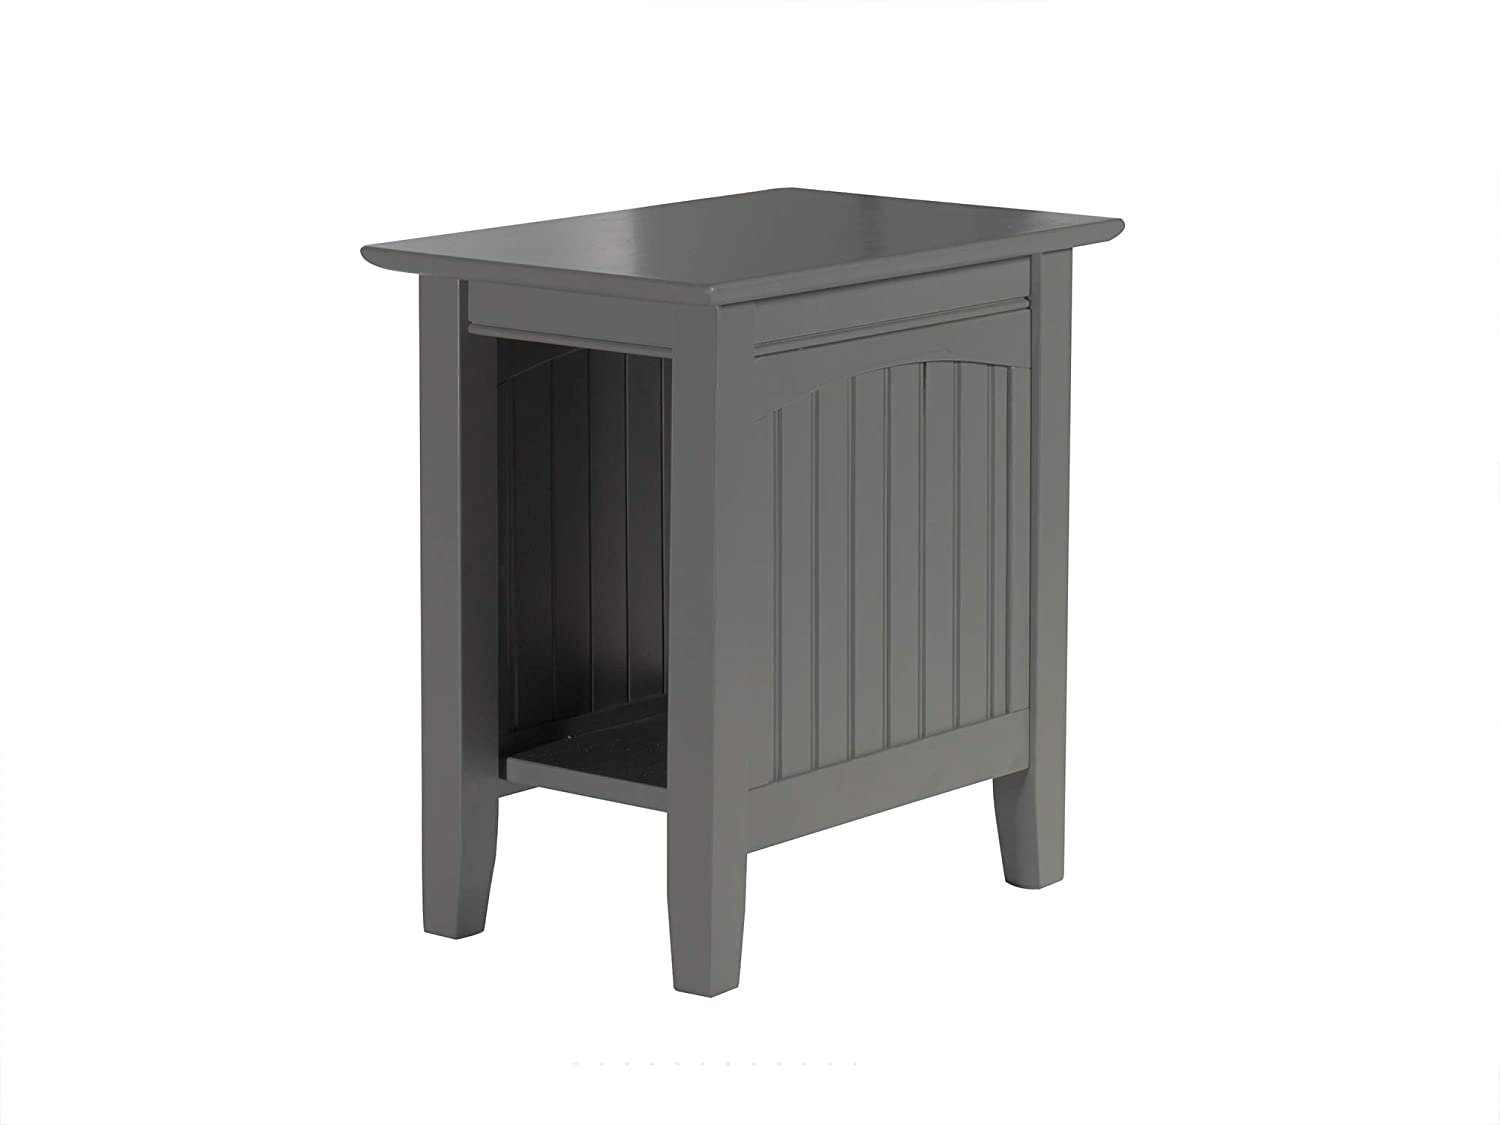 Atlantic Furniture AH13309 Nantucket Side Table Wood Chair (22' x 14'), Grey